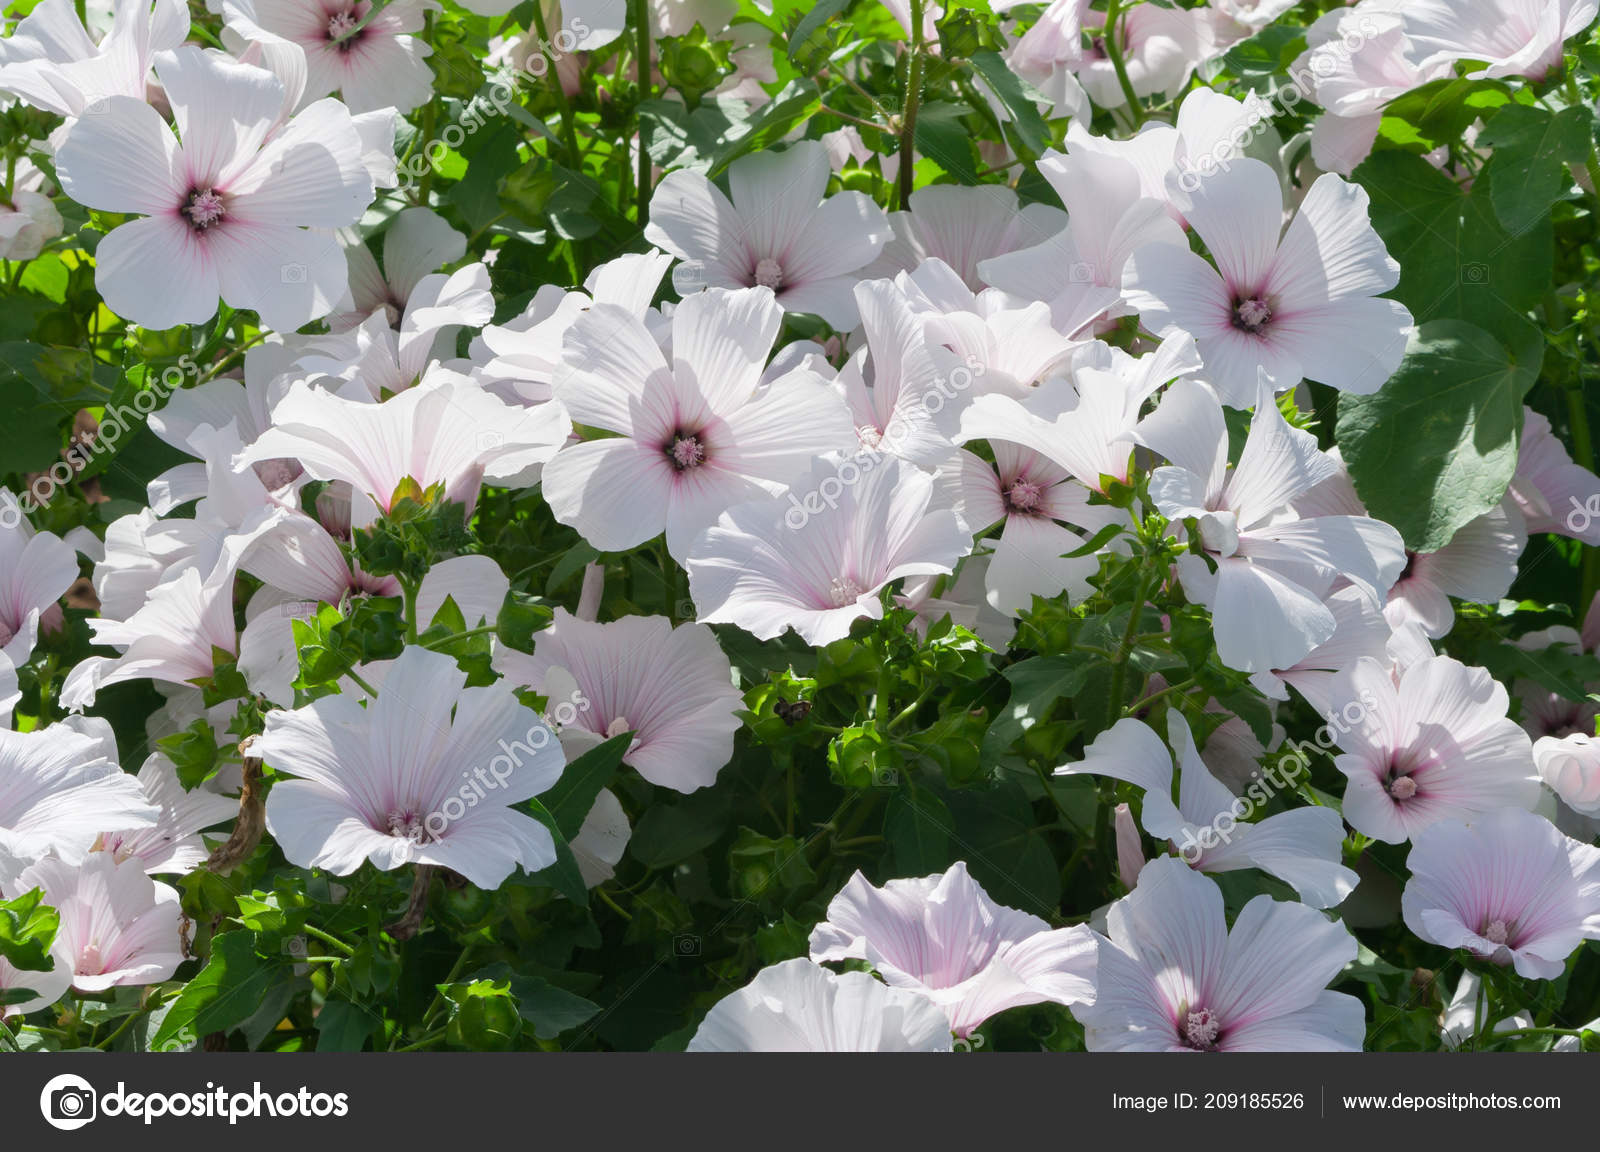 Lavatera White Dwarf Pink Blush Beautiful White Flowers Pink Stripes